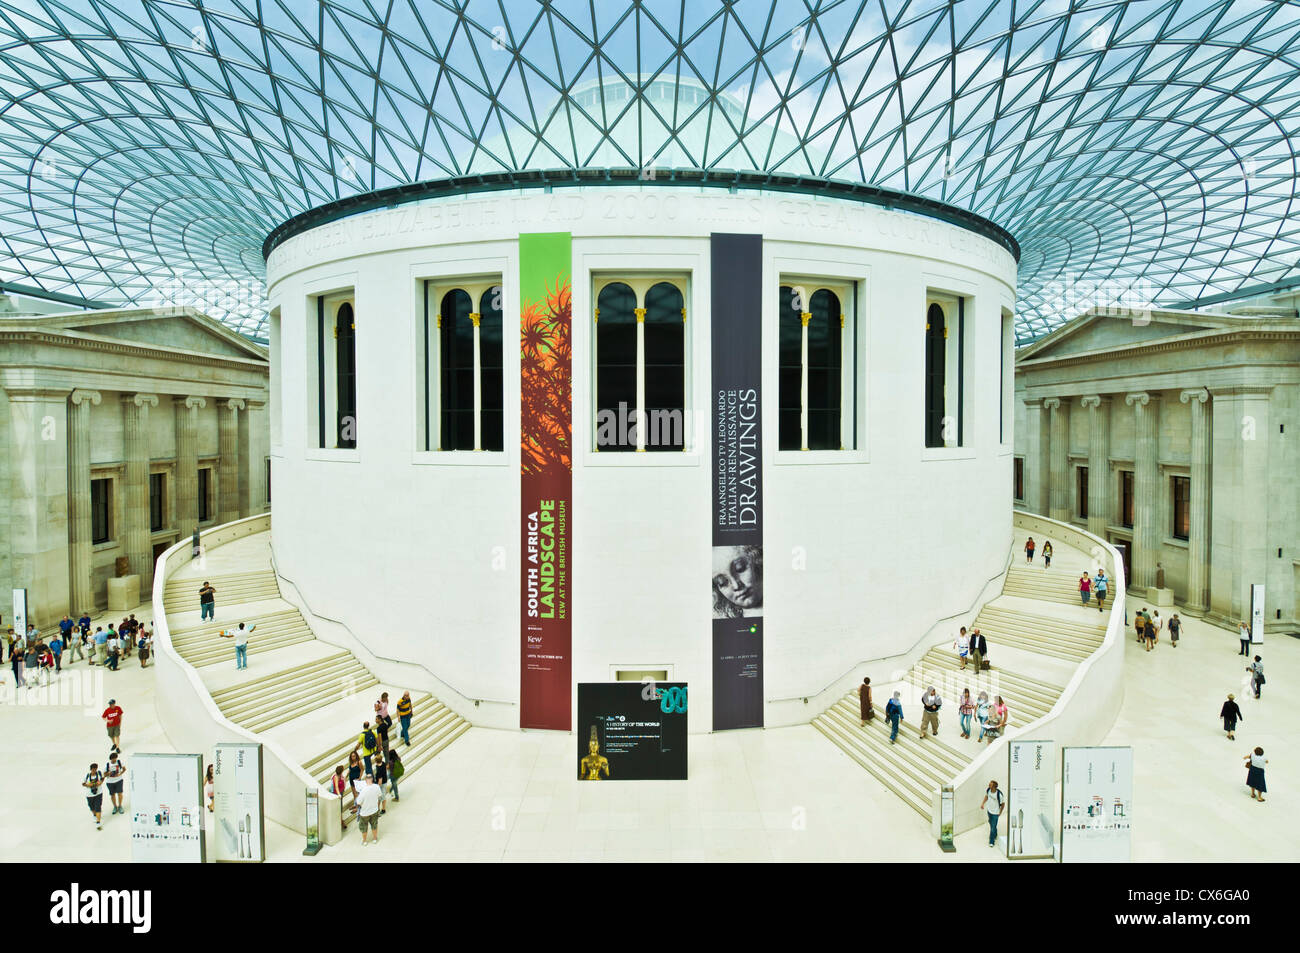 "Königin Elizabeth II ""Great Court"" Glasdach entworfen vom Architekten Norman Foster British Museum Stockbild"